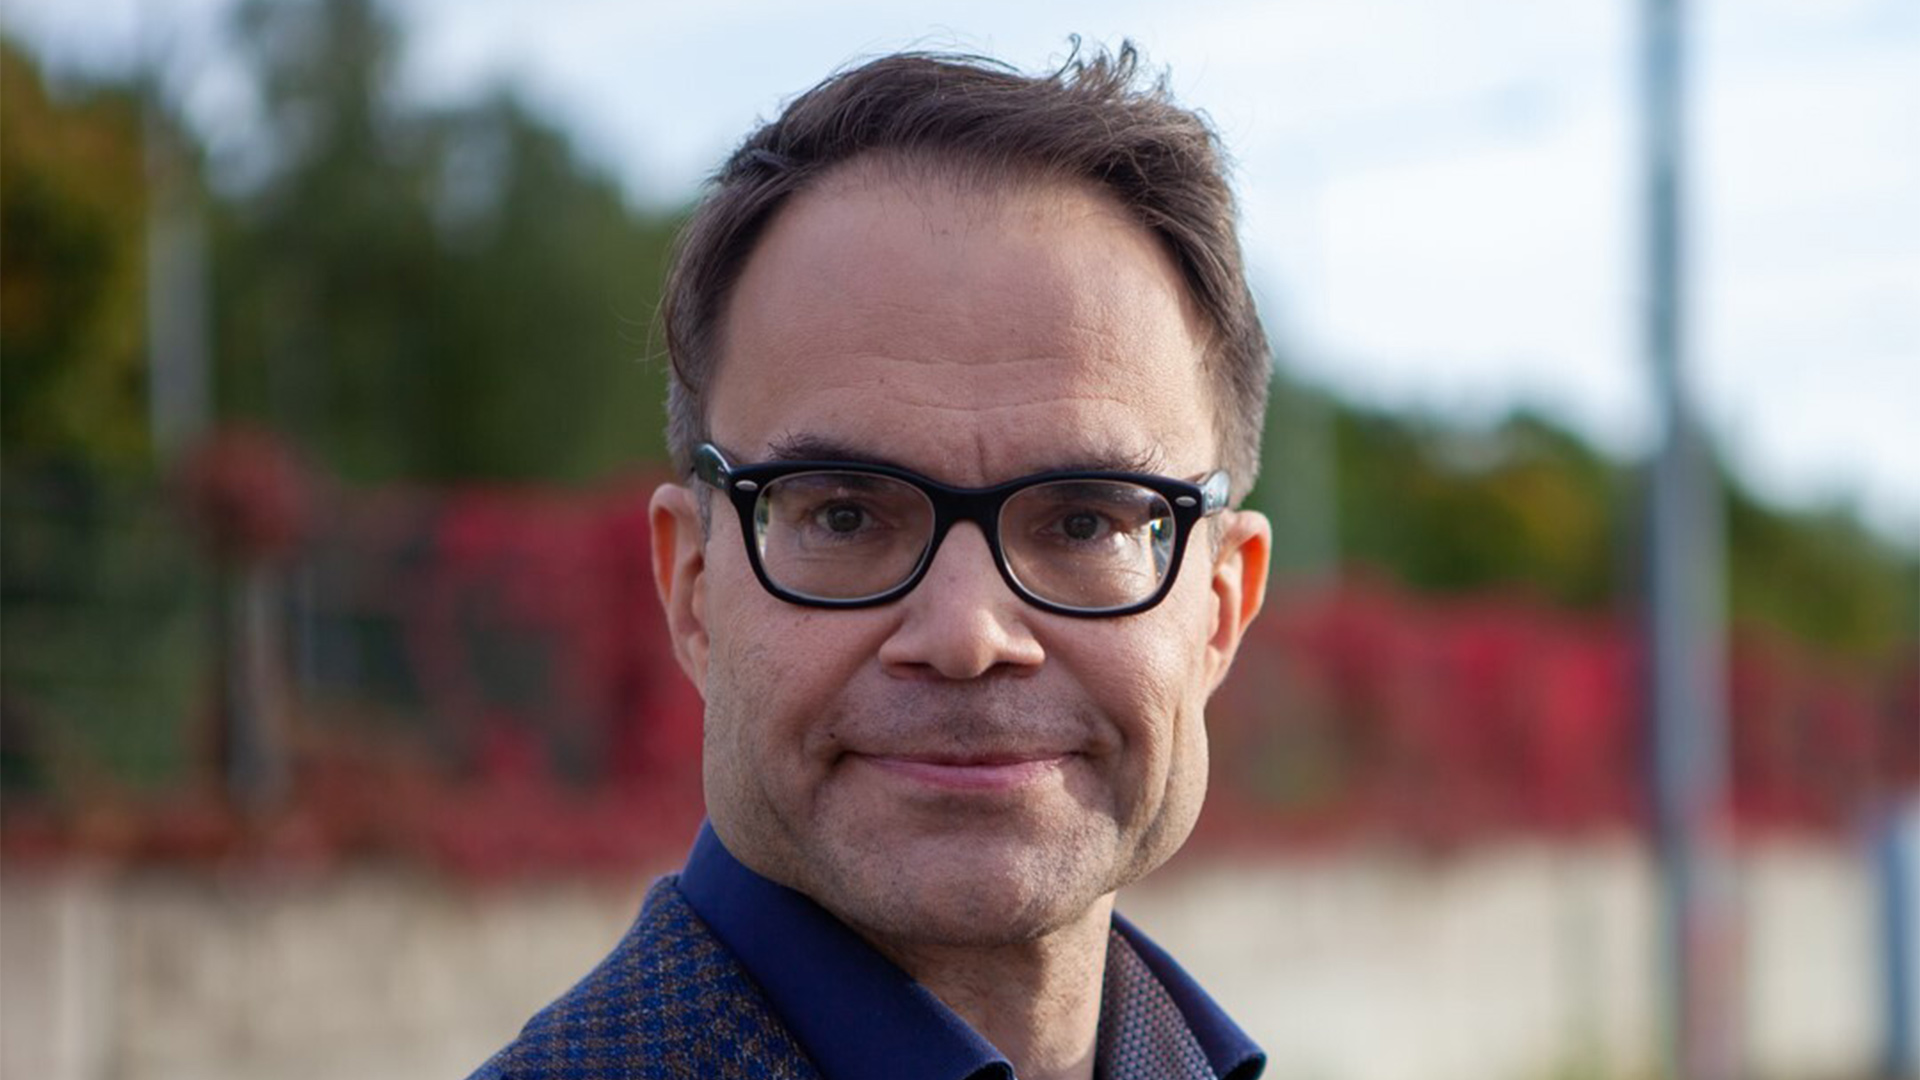 Tomi Pienimäki appointed as Siili's new CEO